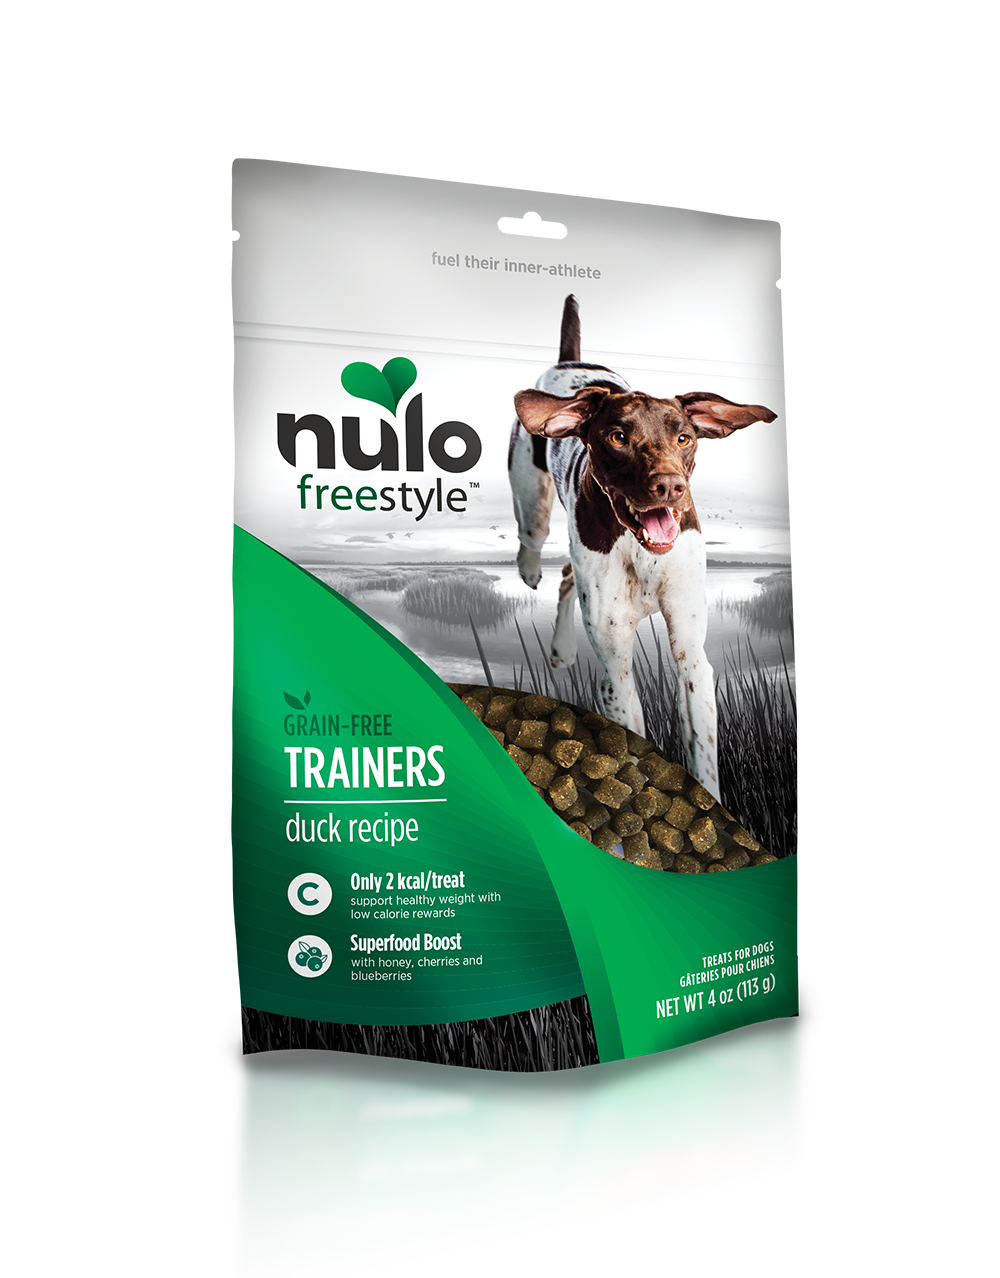 Nulo freestyle trainingtreats duck